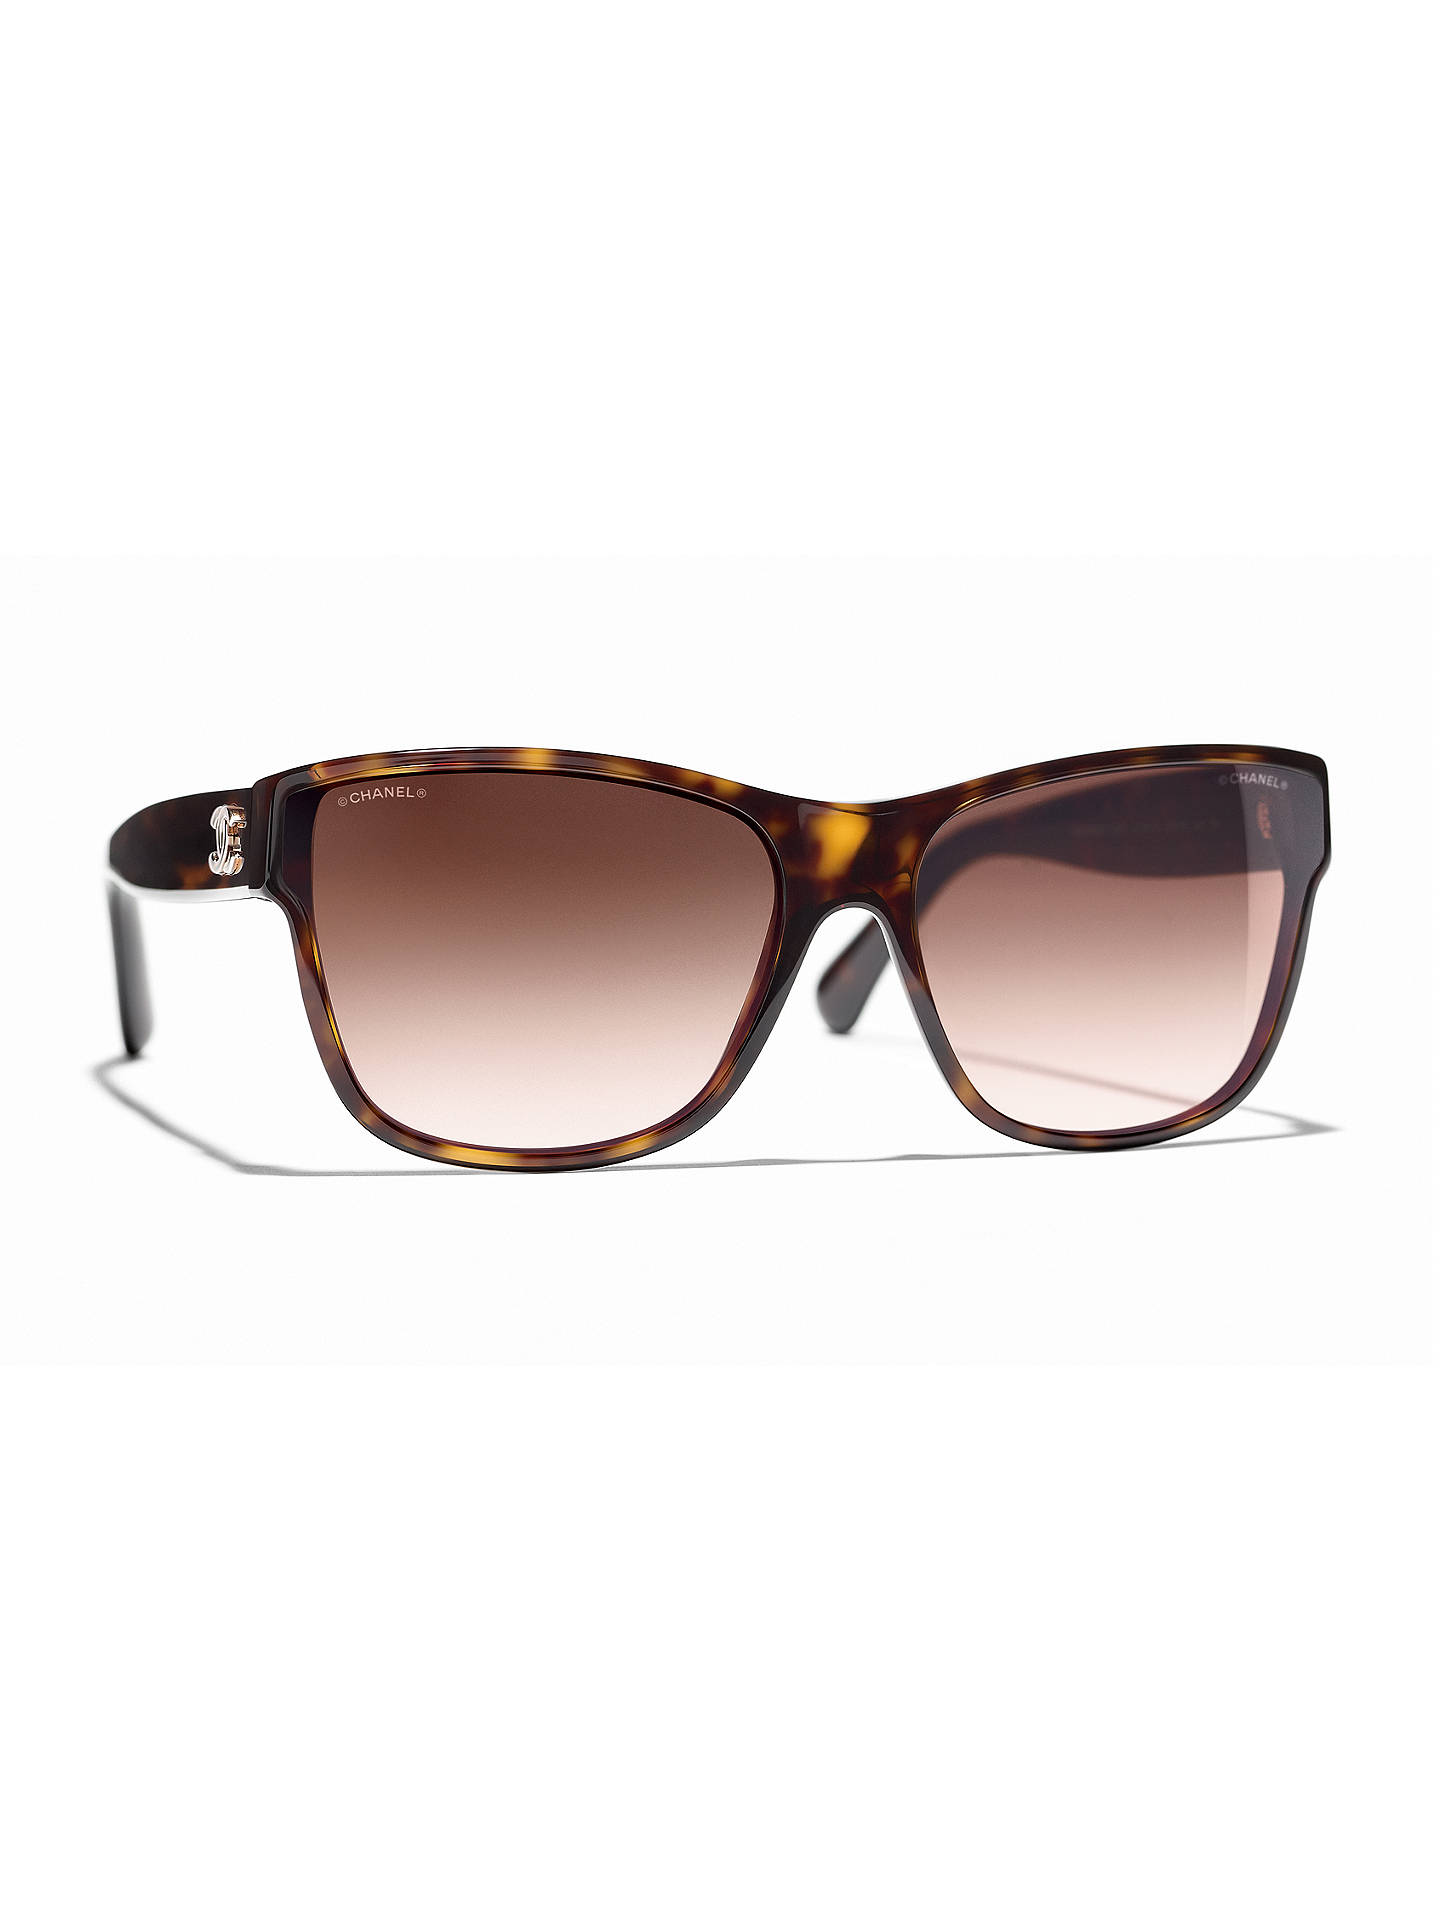 525432a2a13 BuyCHANEL Butterfly Sunglasses CH5386 Tortoise Brown Gradient Online at  johnlewis.com ...